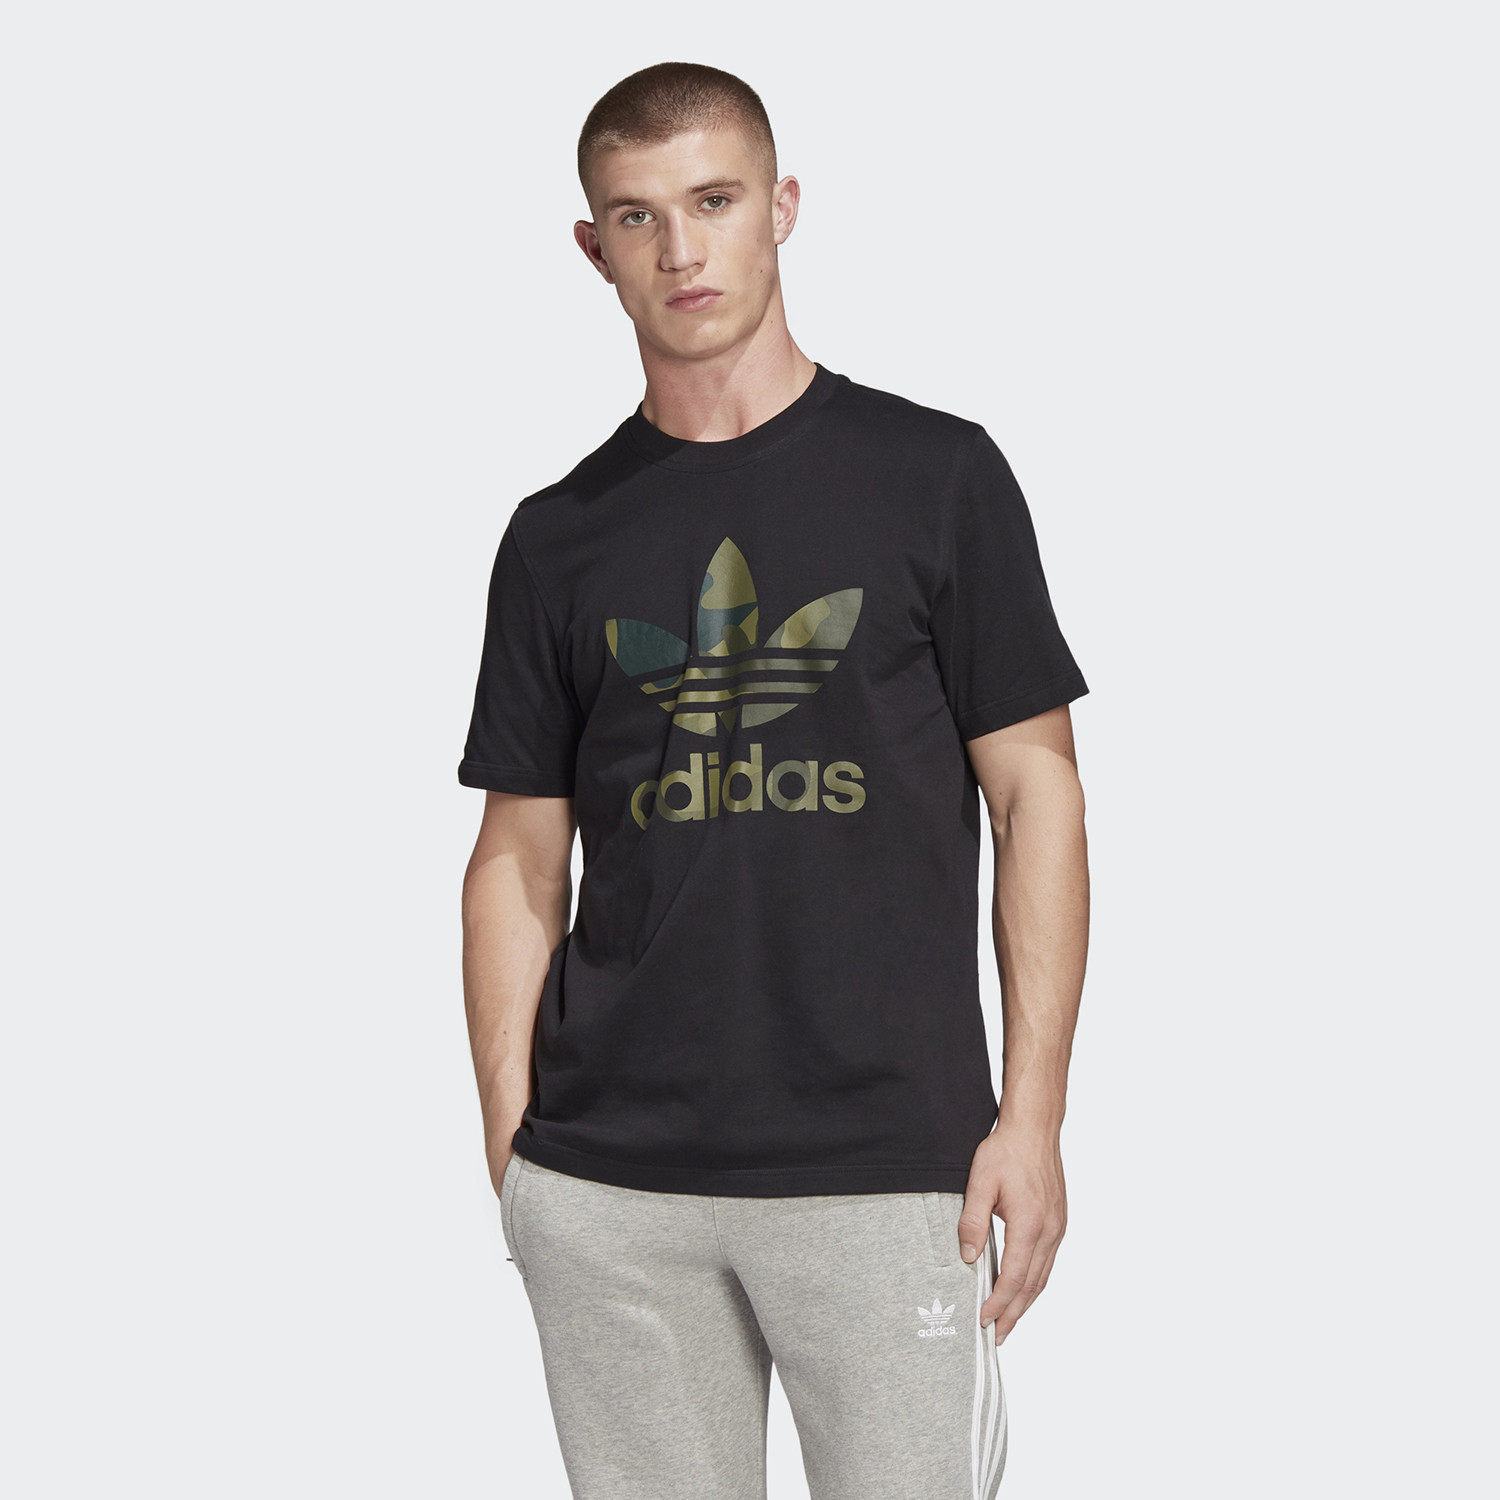 adidas Originals Camouflage Men's Tee (9000045515_5346)